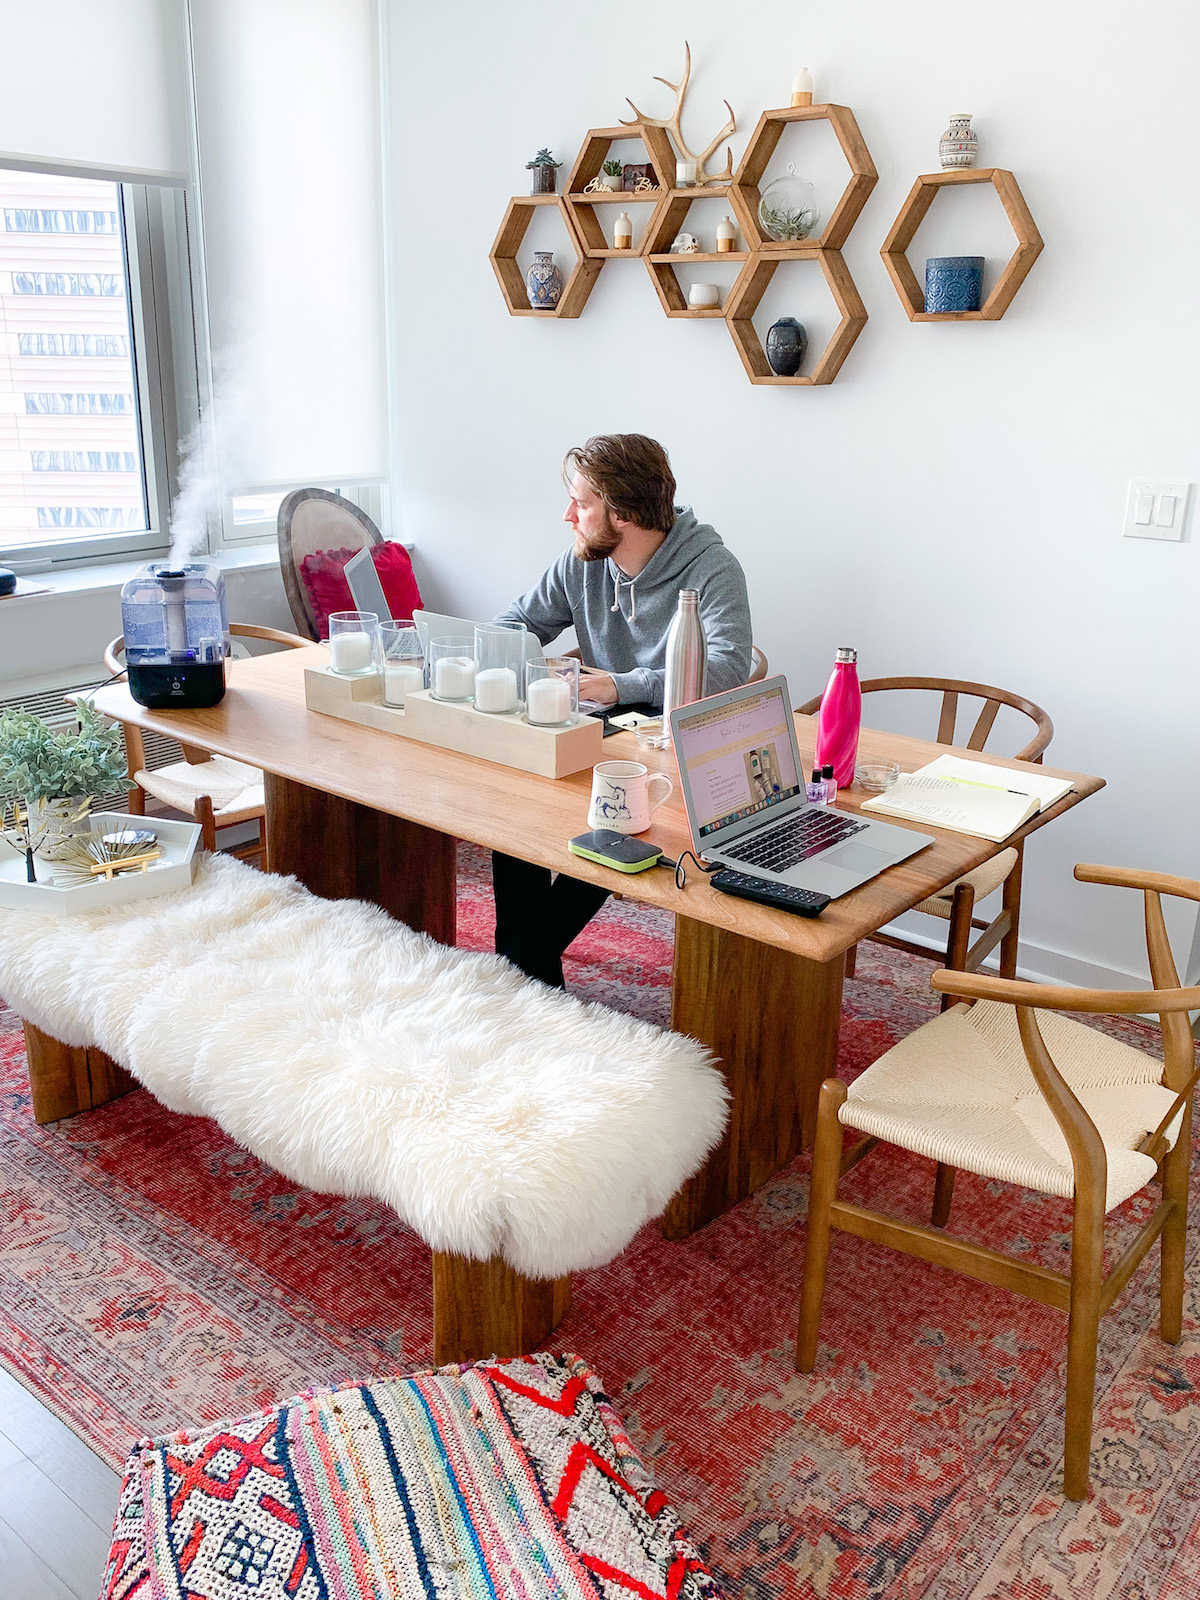 How To Stay Sane Working From Home With Your Significant Other